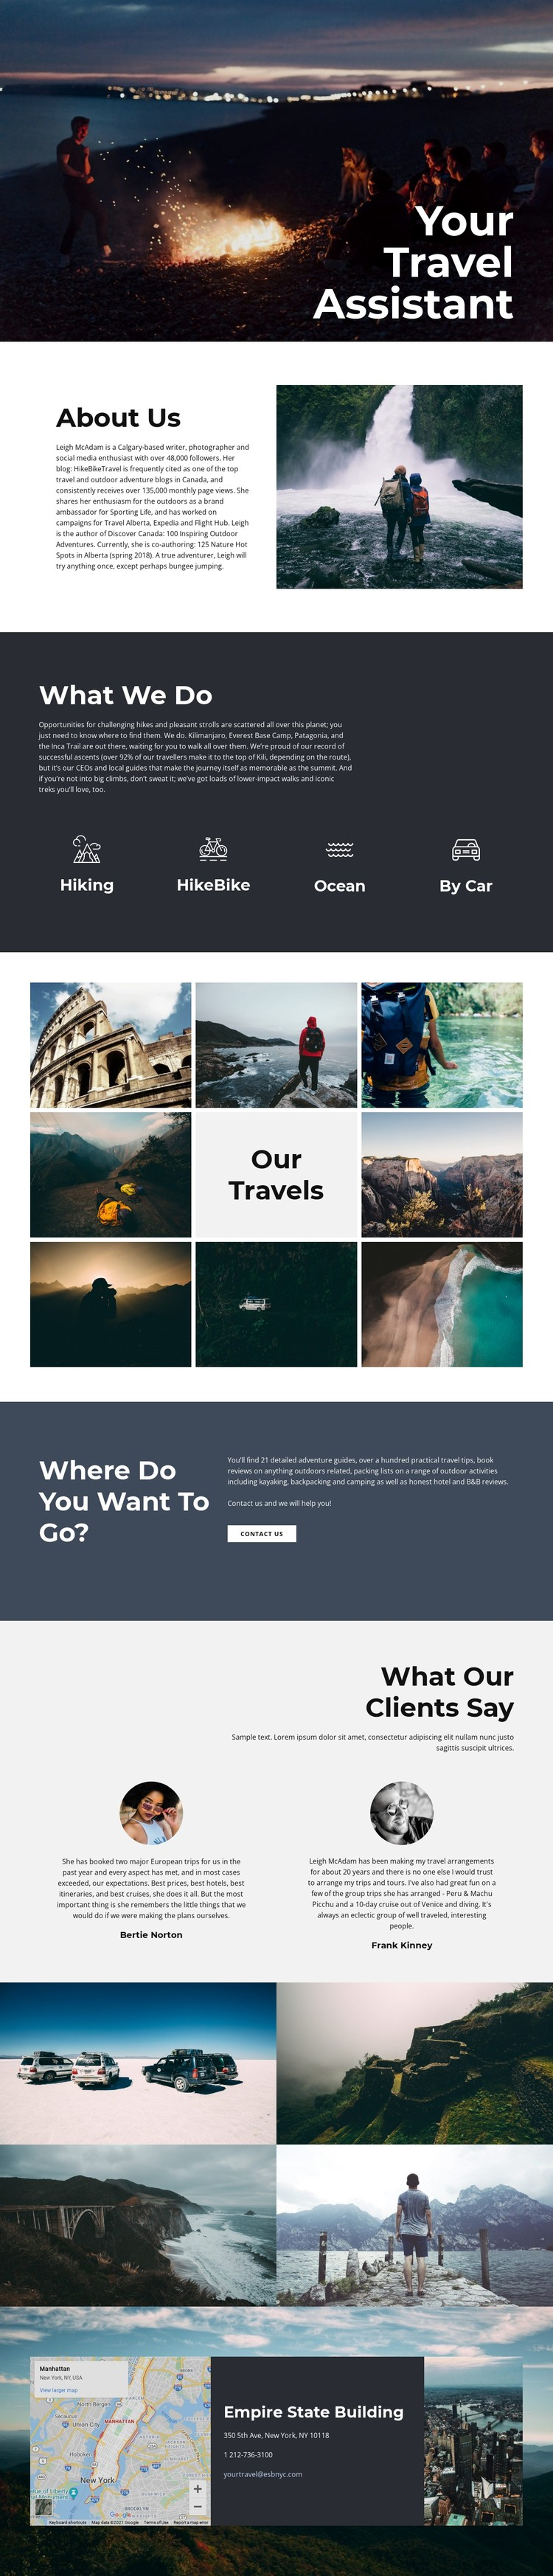 Travel Assistant CSS Template